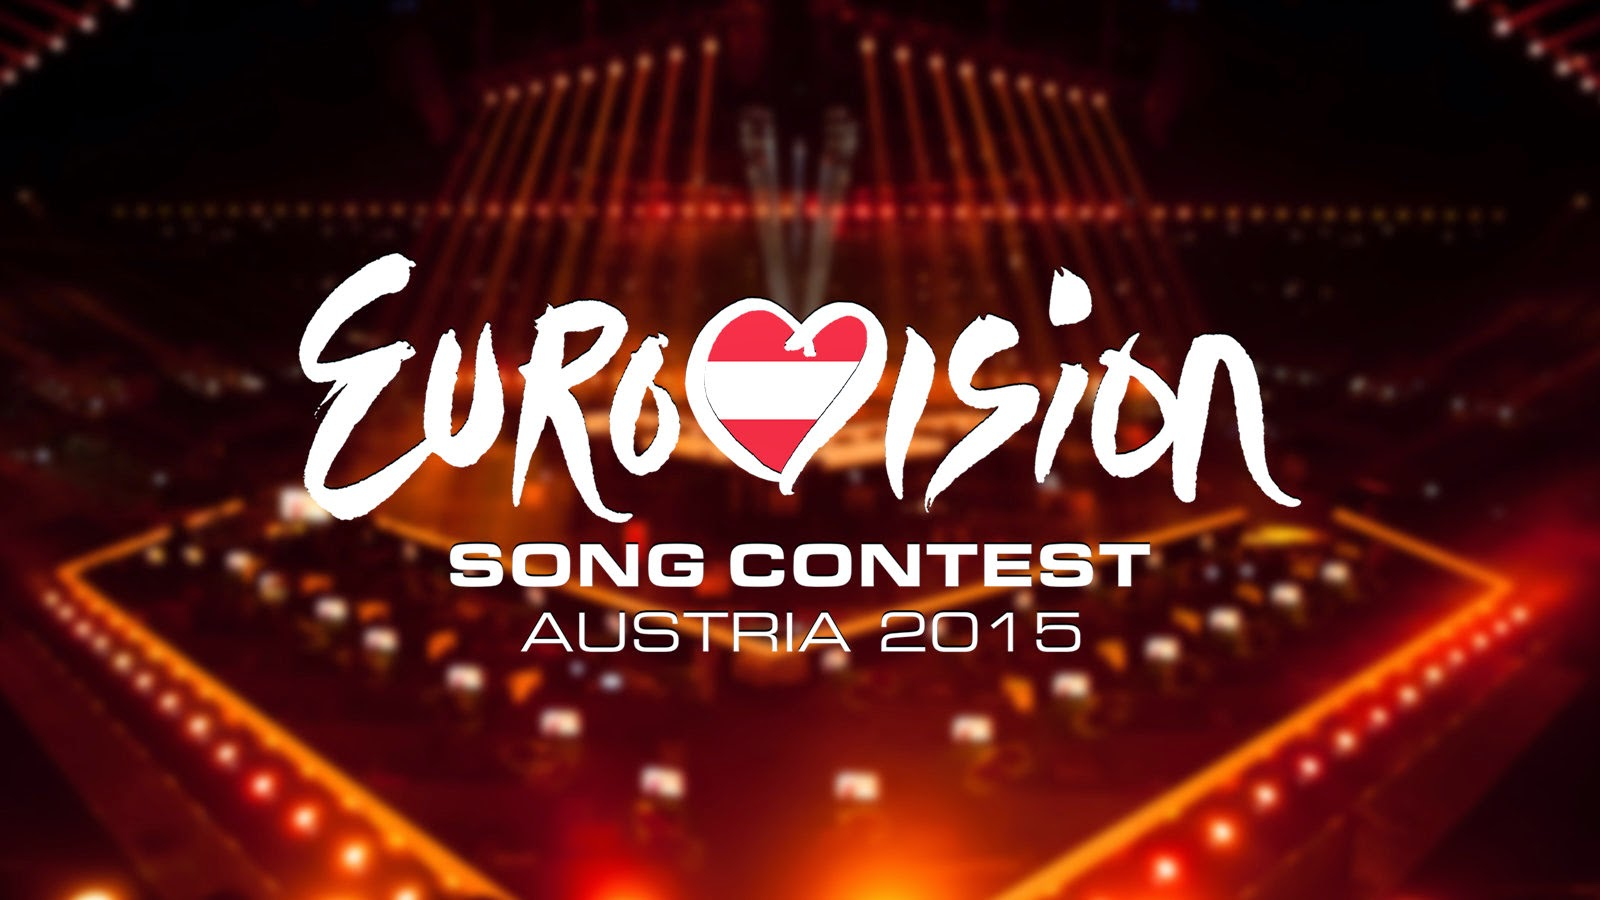 eurovision song contest European song contest in which countries' songs are performed before a vote takes place.